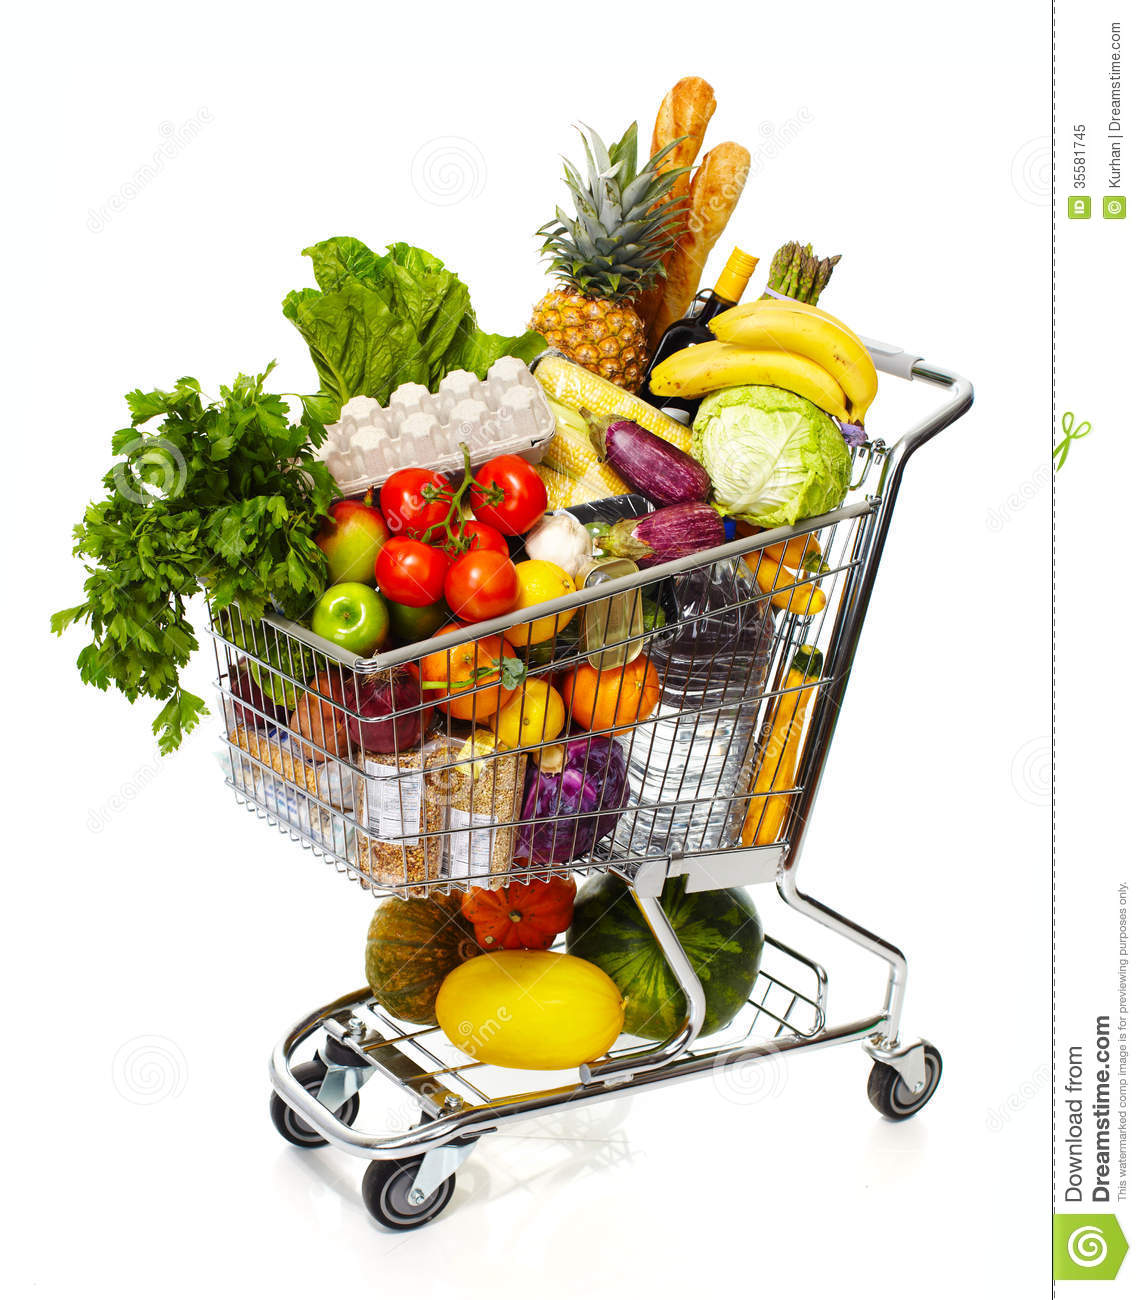 Full grocery cart royalty free stock photo image 35581745 for Shopping cuisine